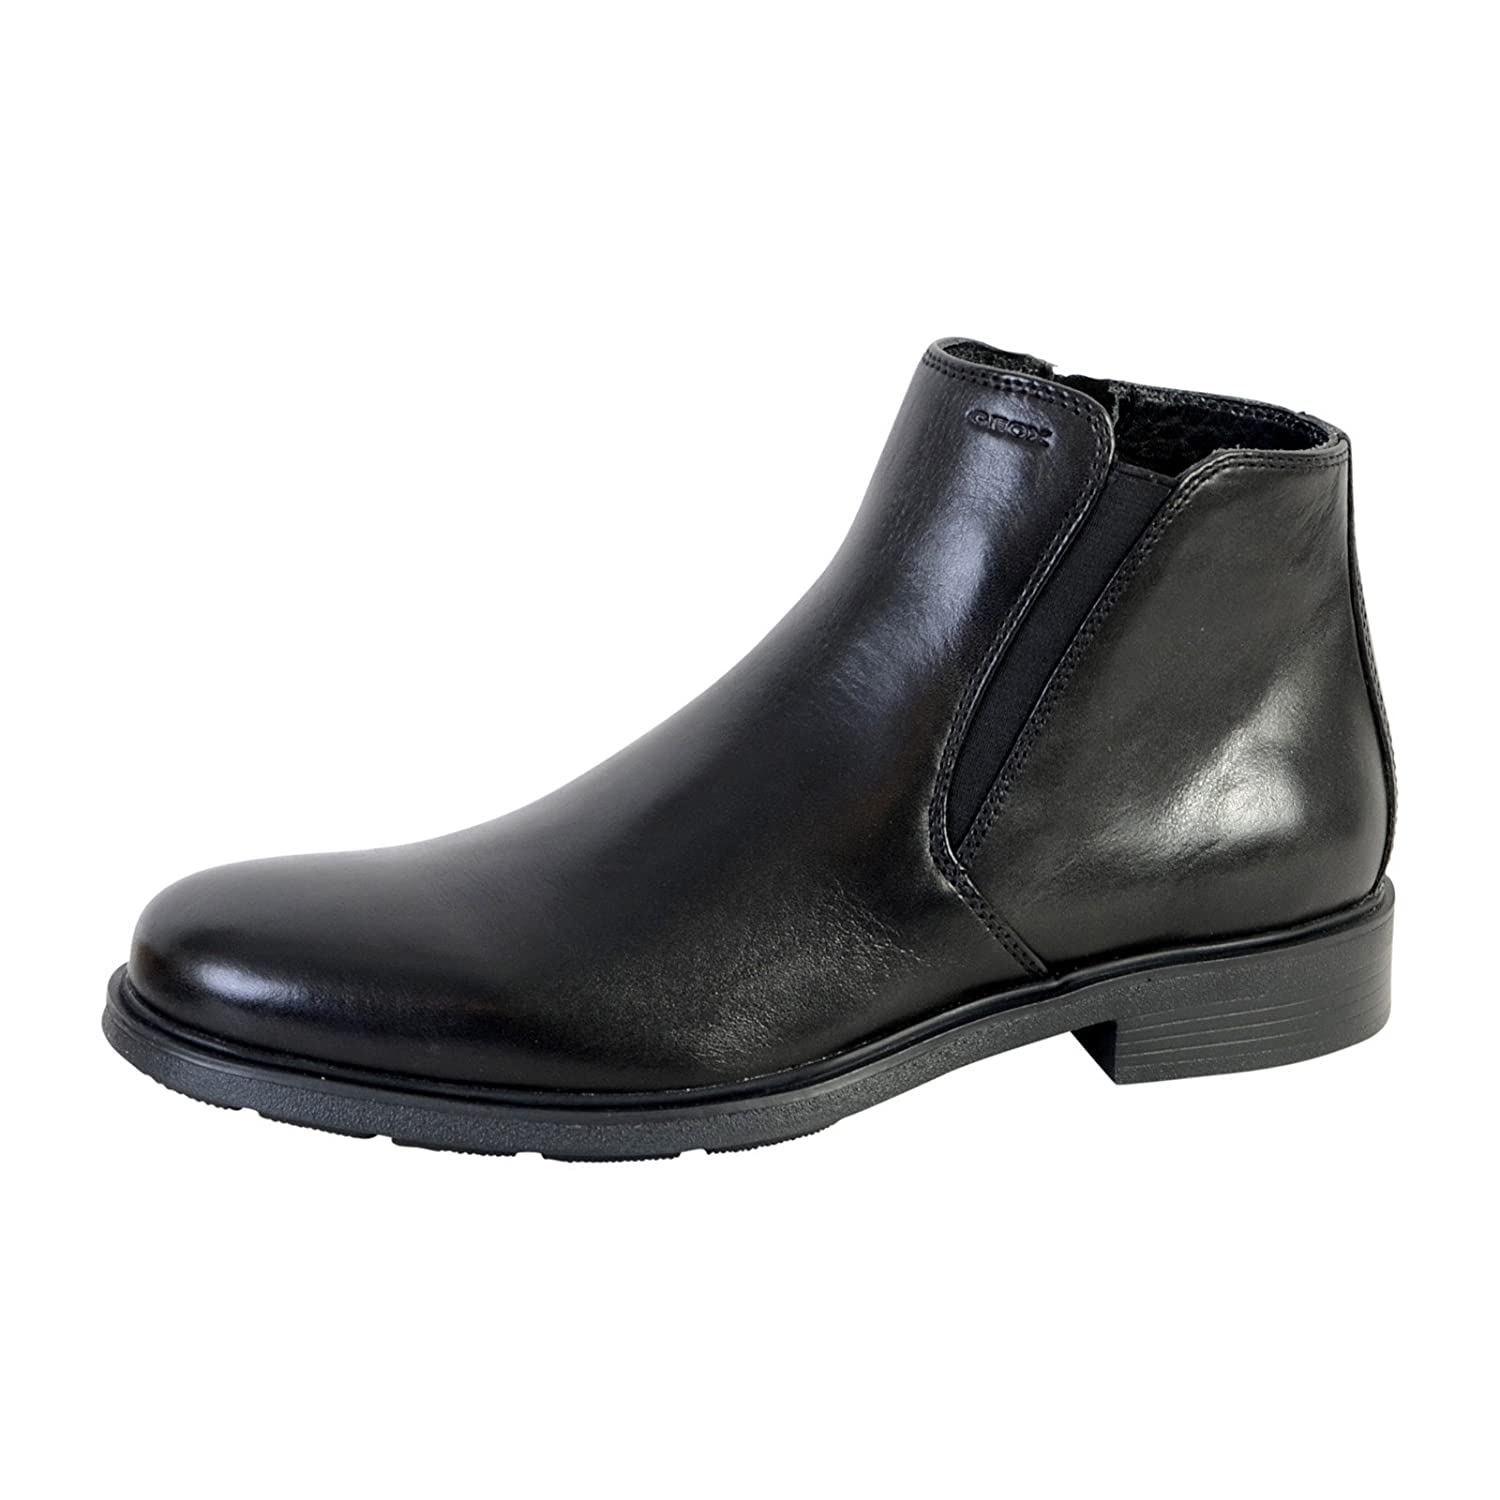 geox youth boots, geox men's u dublin d chelsea boots shoes